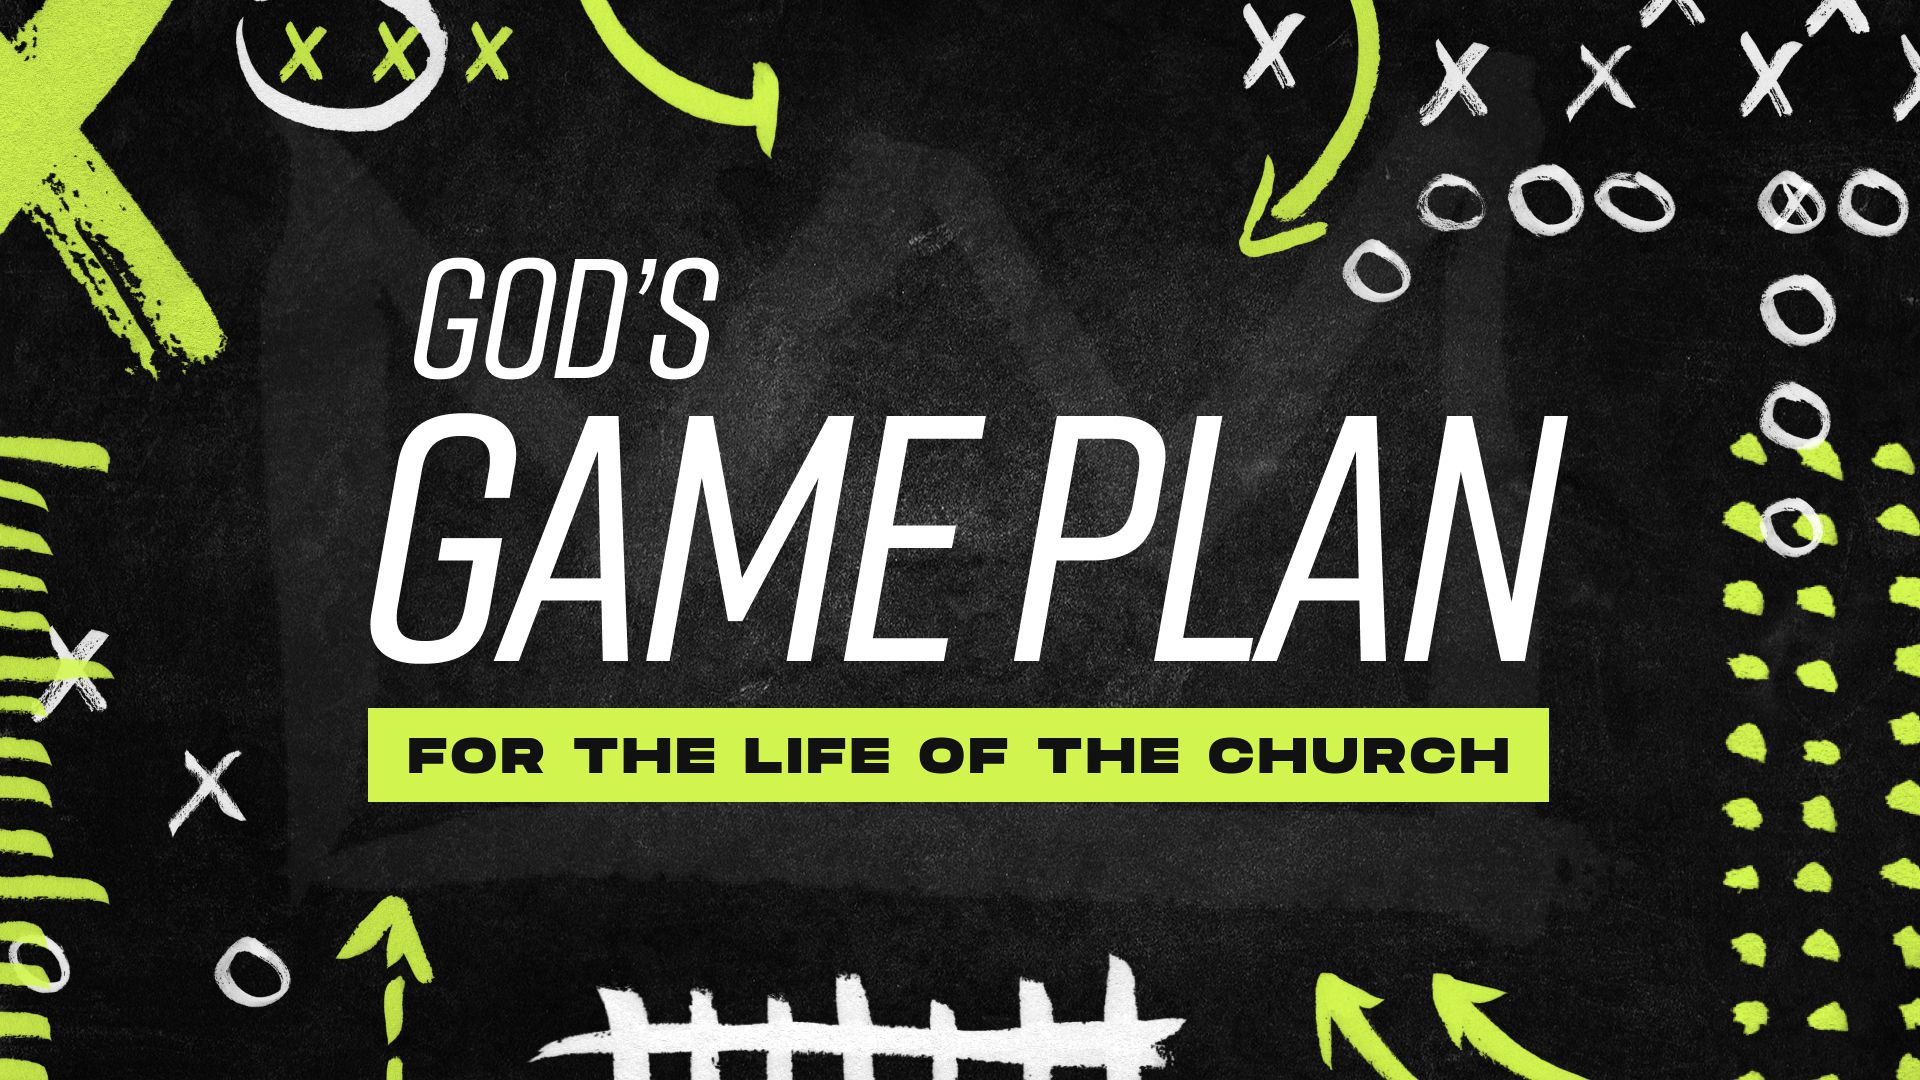 God's Game Plan for the Life of the Church